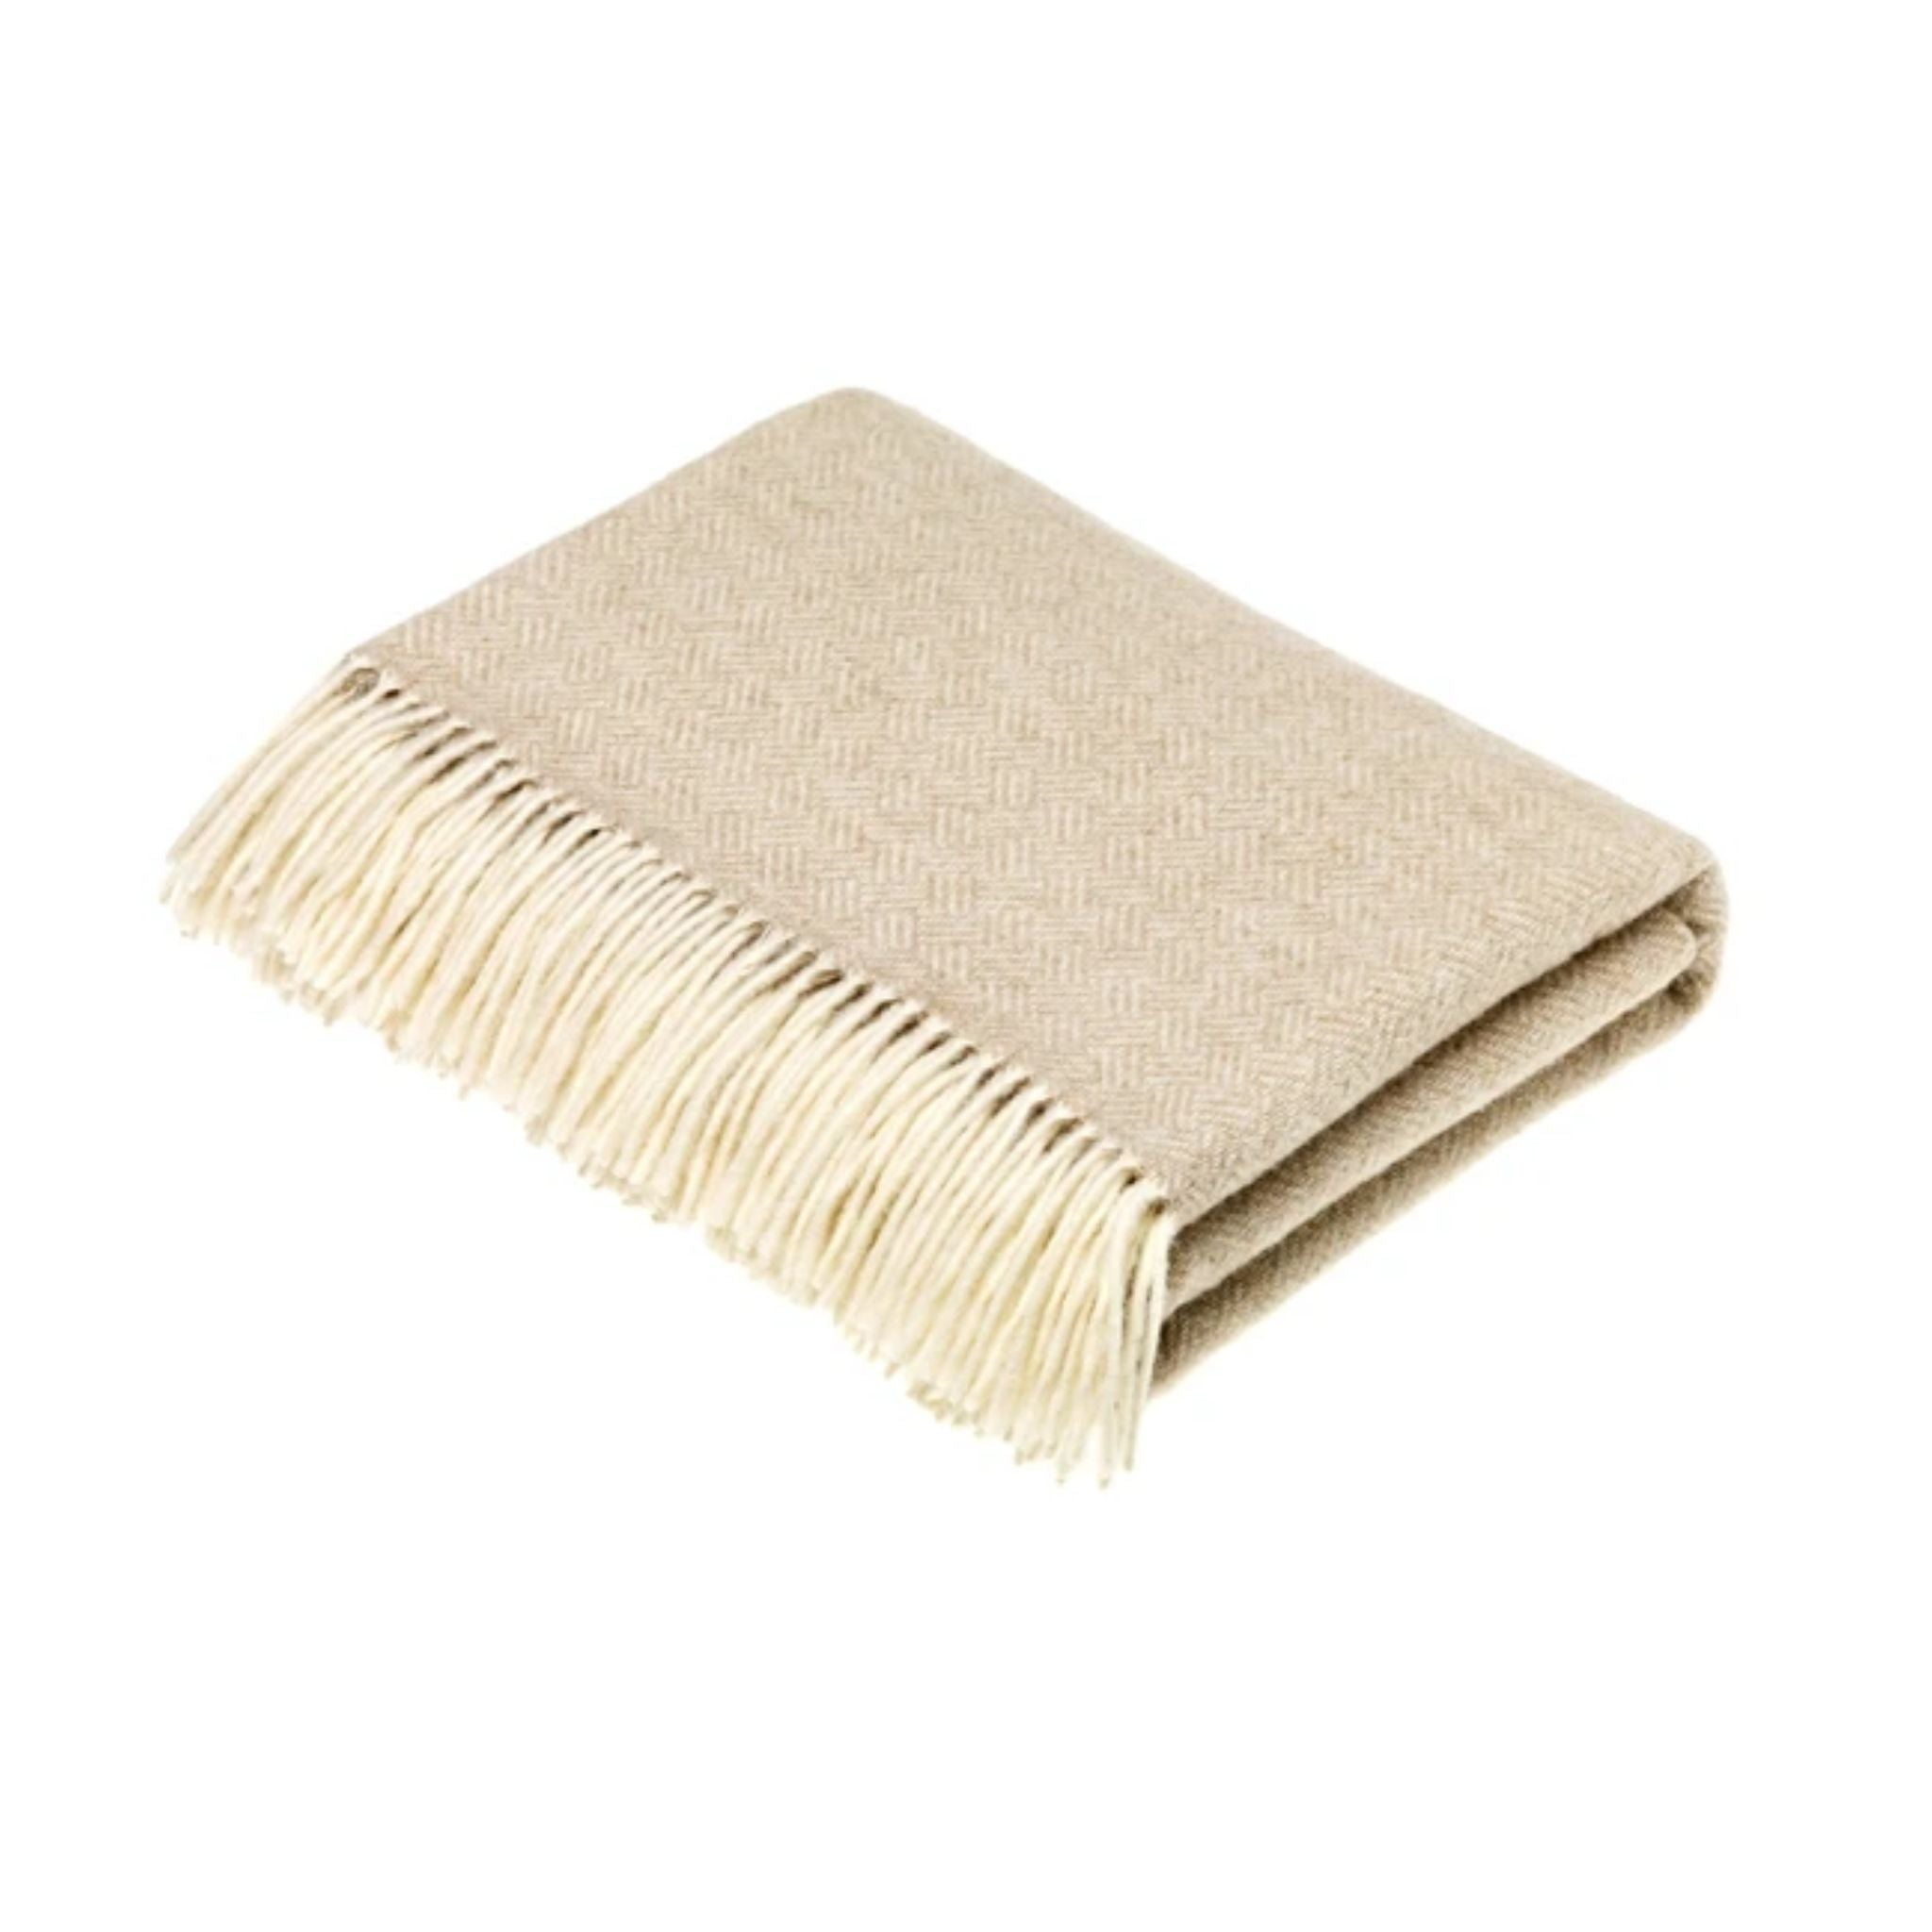 Merino Wool Throw - Parquet Collection Beige